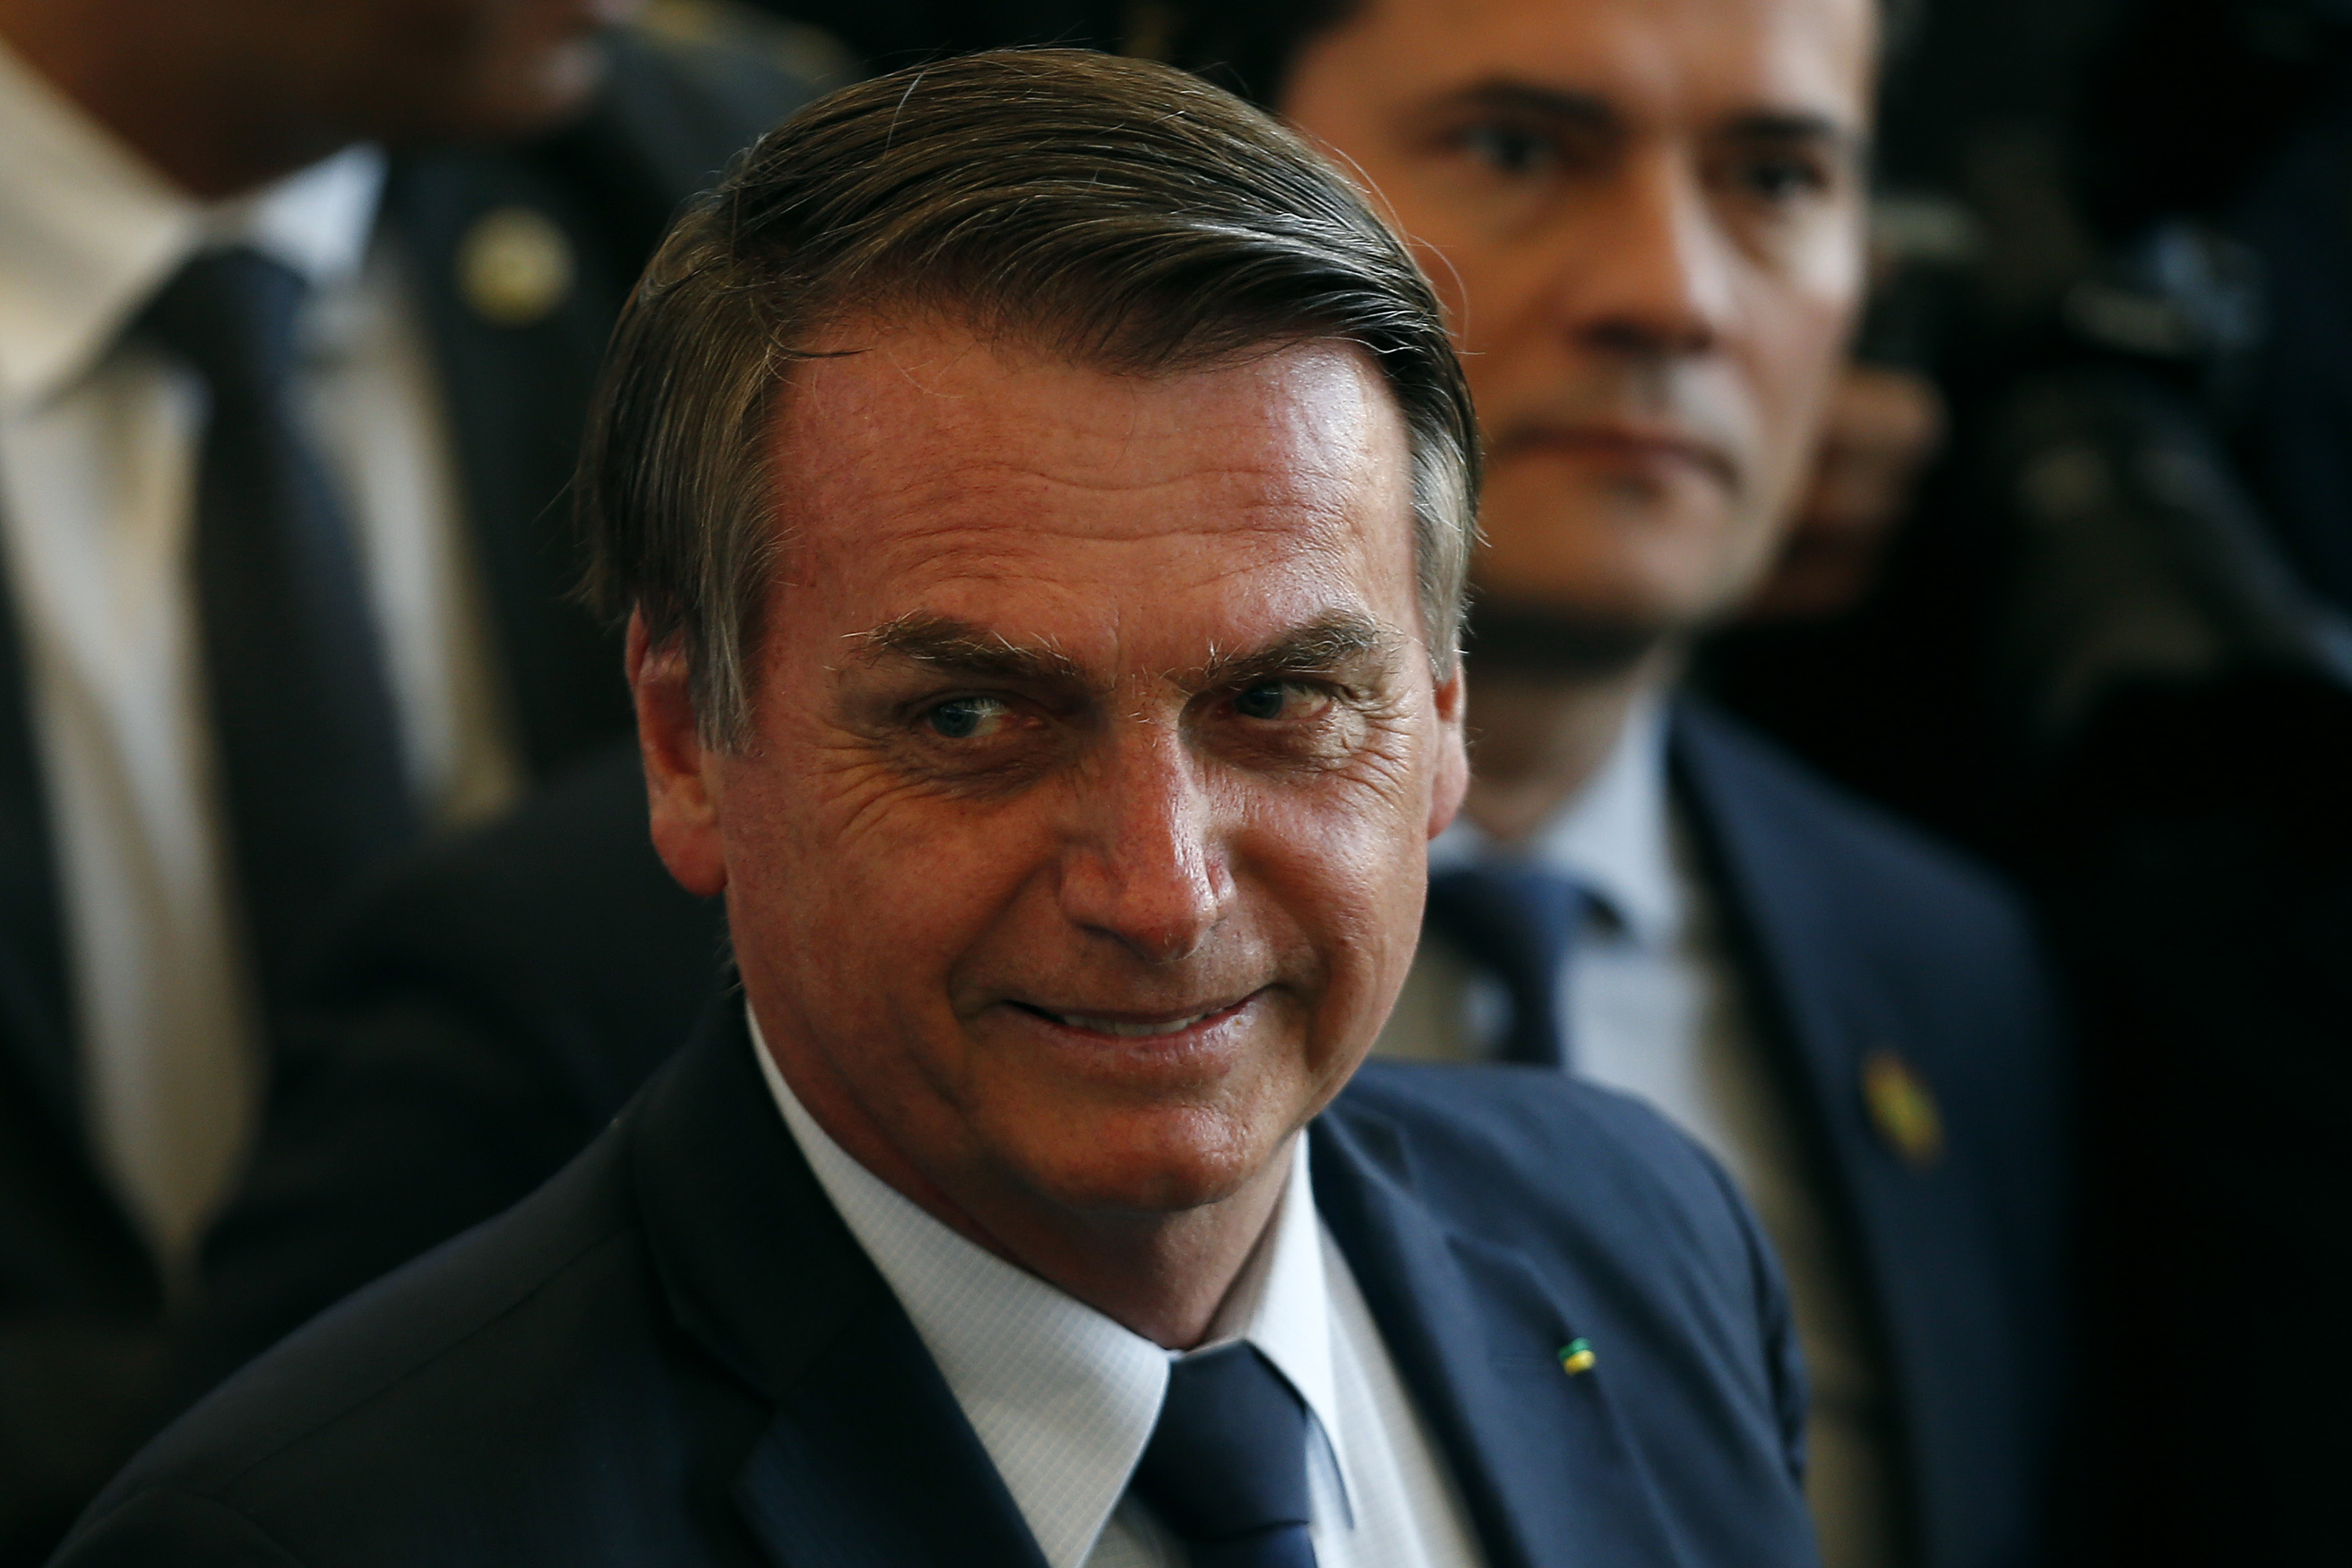 Brazilian President Jair Bolsonaro in July 2019.